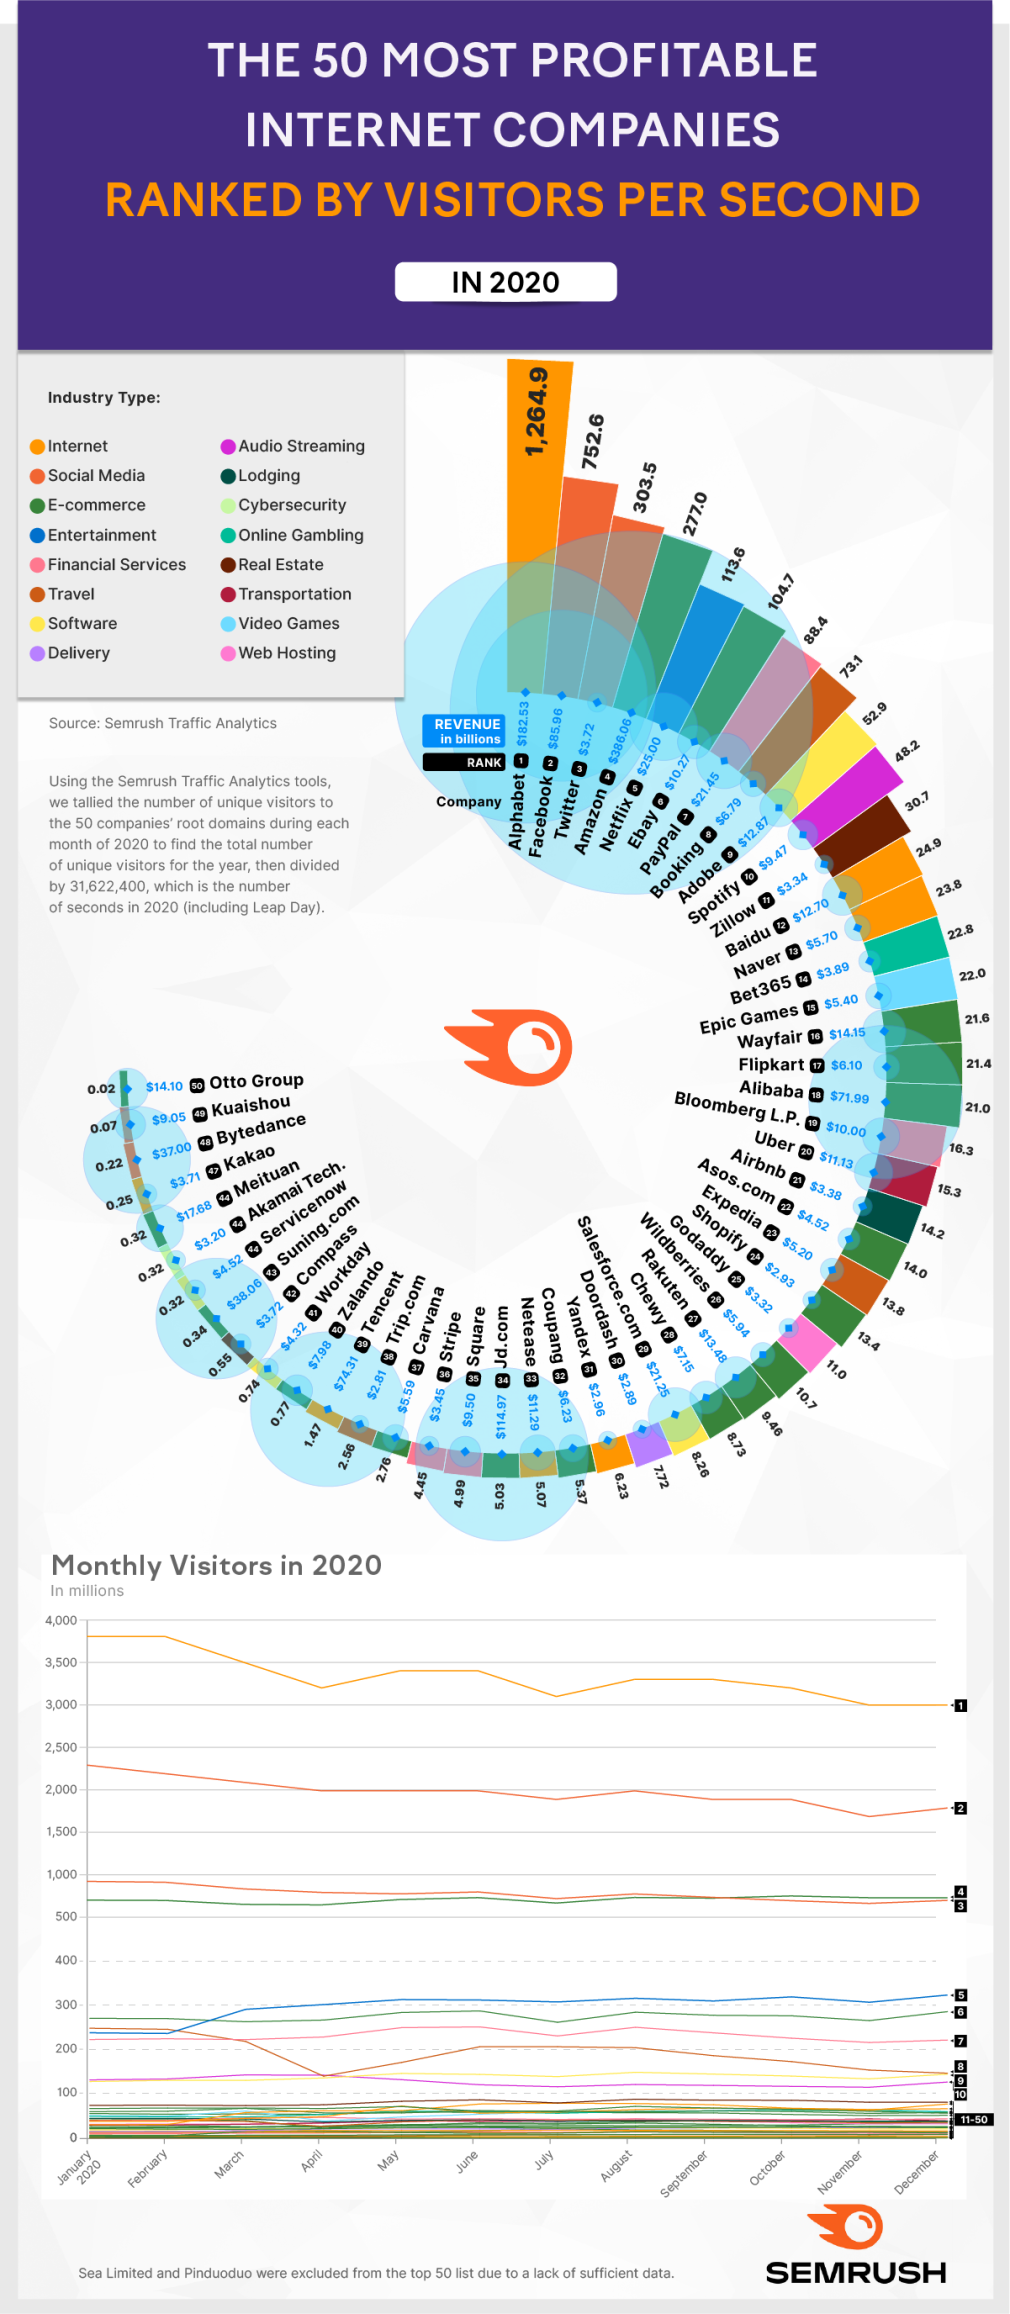  The 50 Most Profitable Internet Companies Ranked by Visitors per Second in 2020